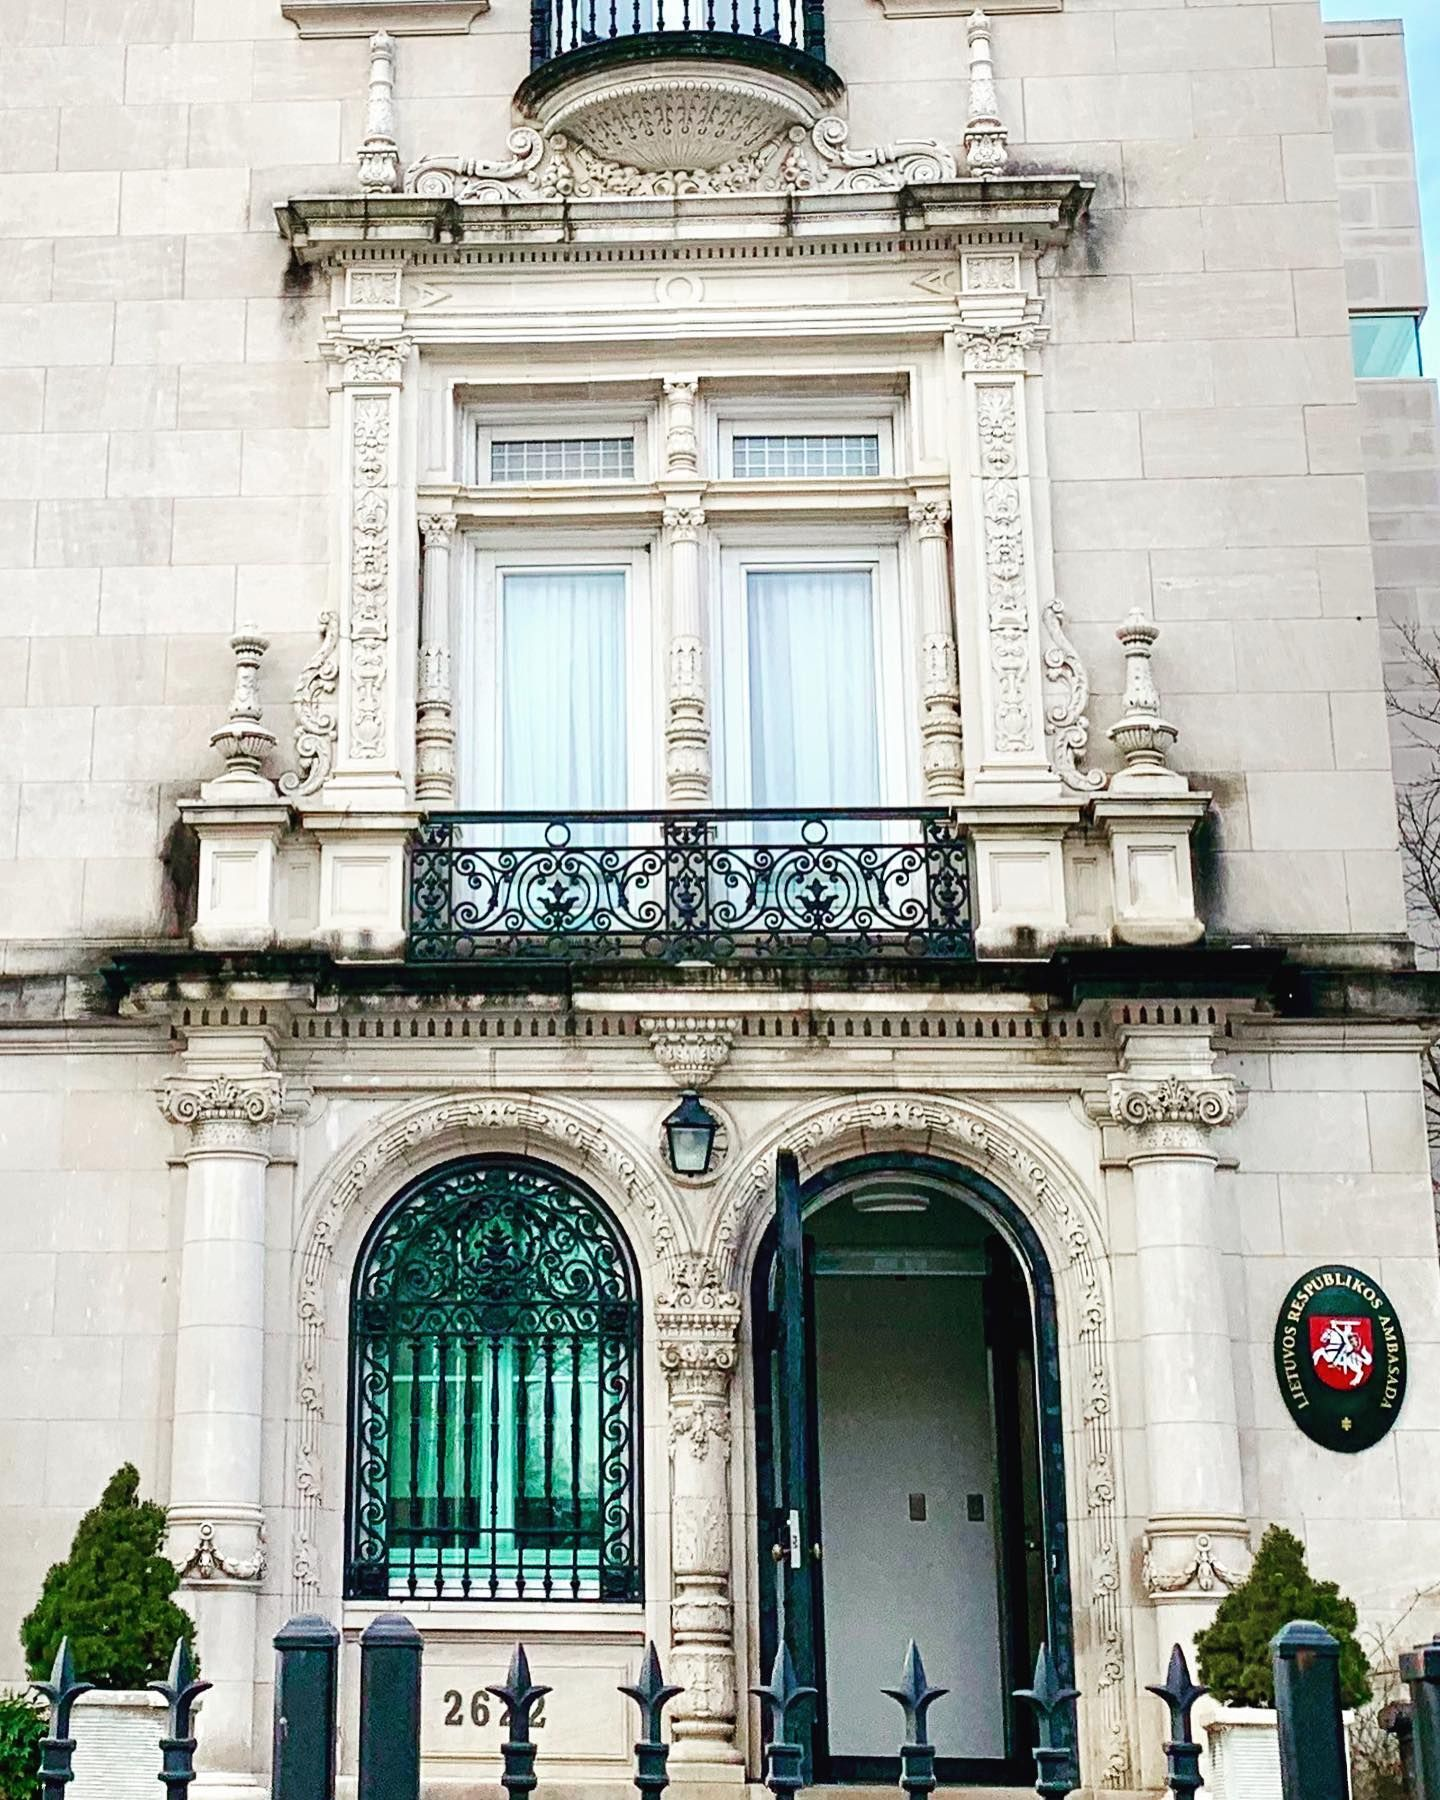 The Embassy Of Lithuania In Washington Dc Adams Morgan Neighborhood 2622 16th Street Nw Was Estate Homes Real Estate Ferry Building San Francisco